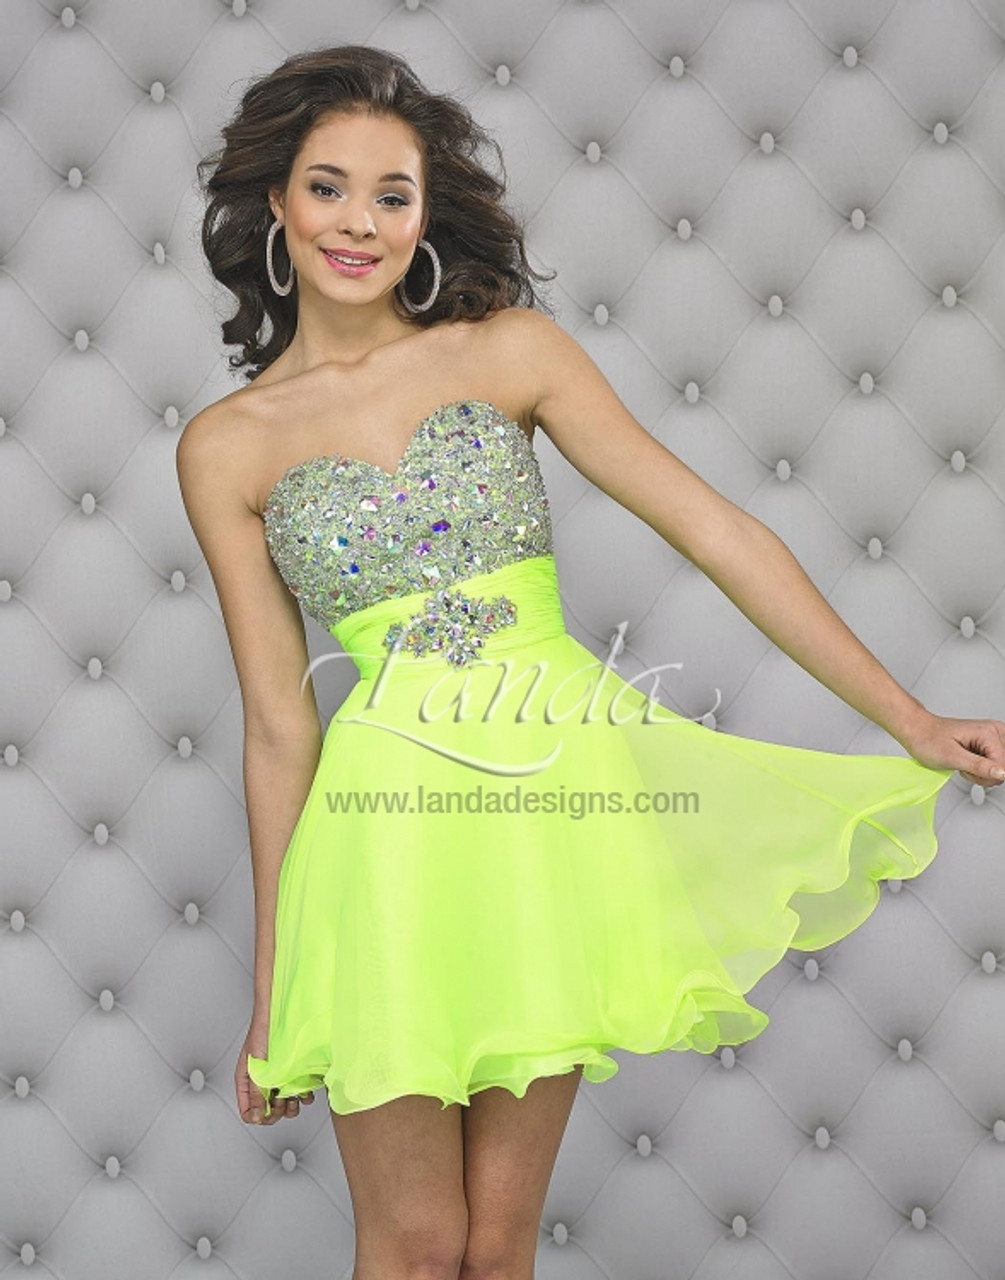 Prom-Avenue, homecoming dance dress,Landa splash, Landa designs ...